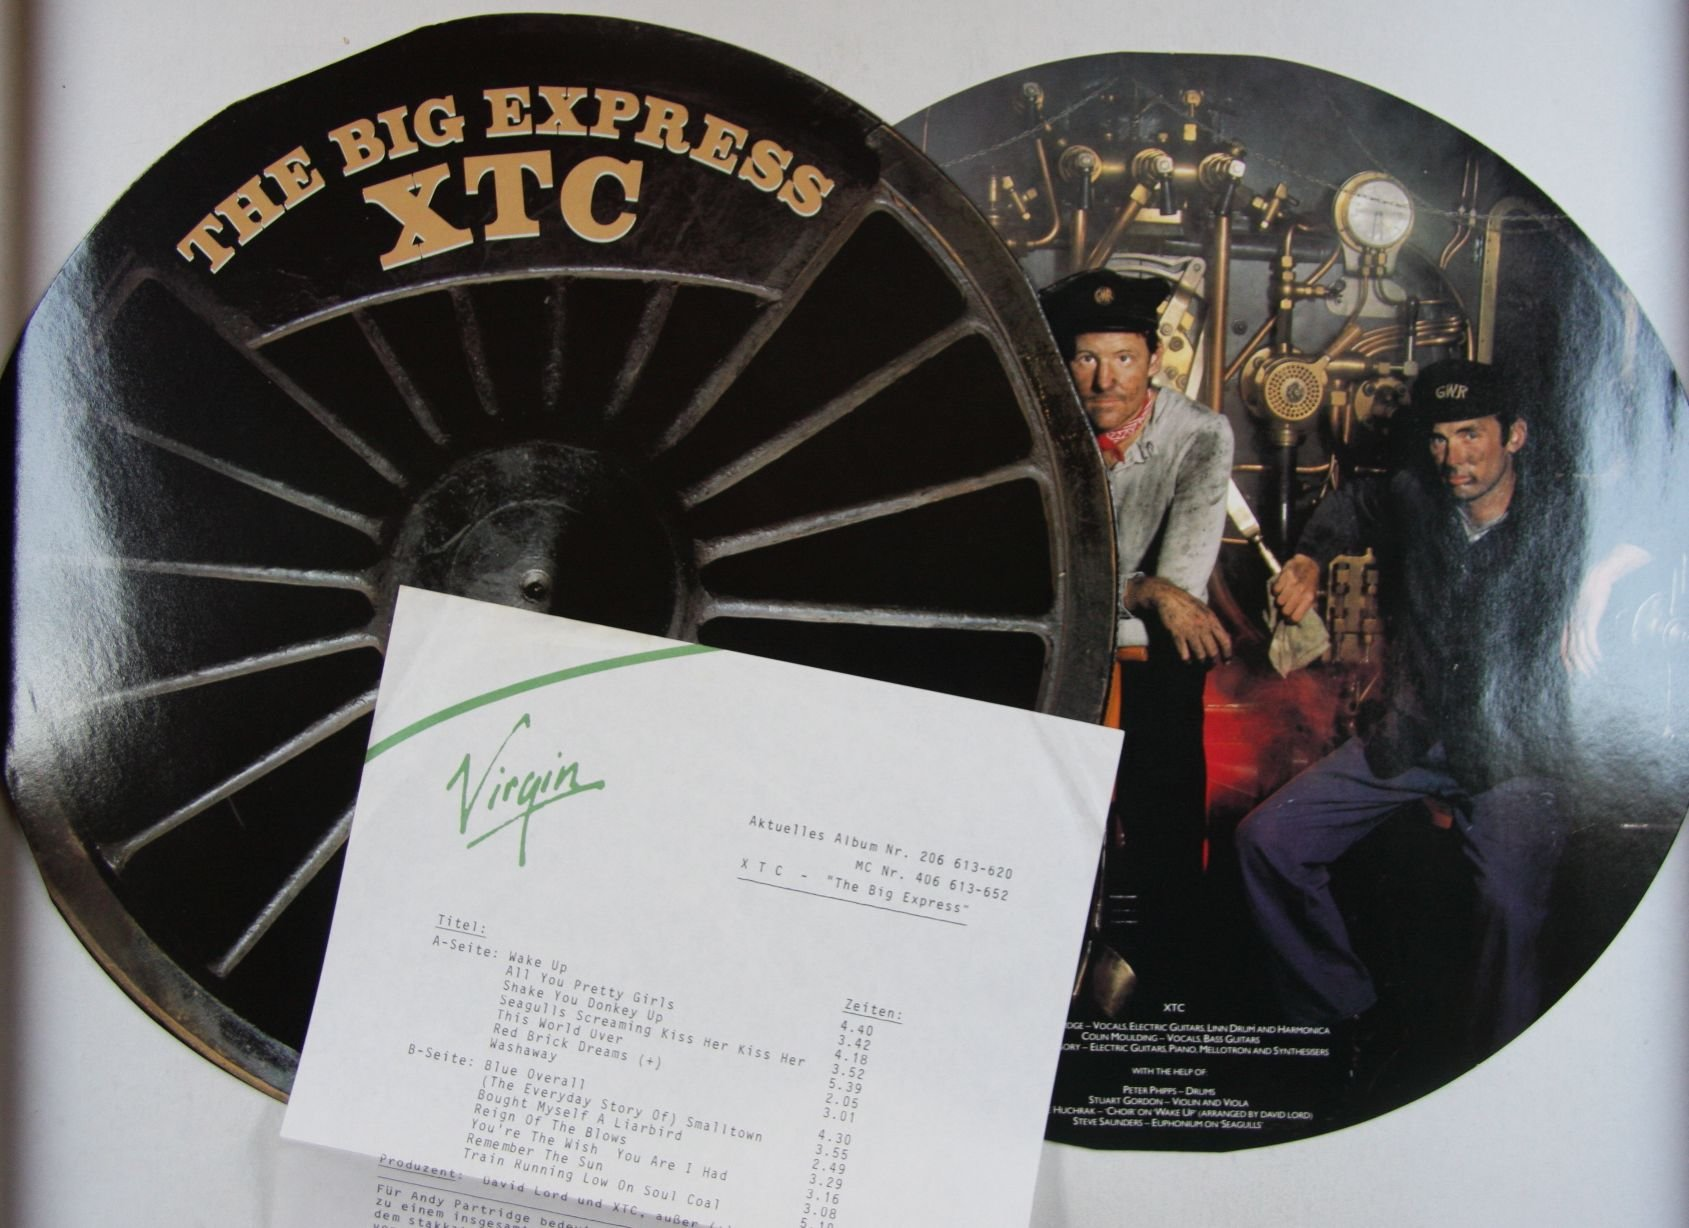 Xtc The Big Express Records, LPs, Vinyl and CDs - MusicStack